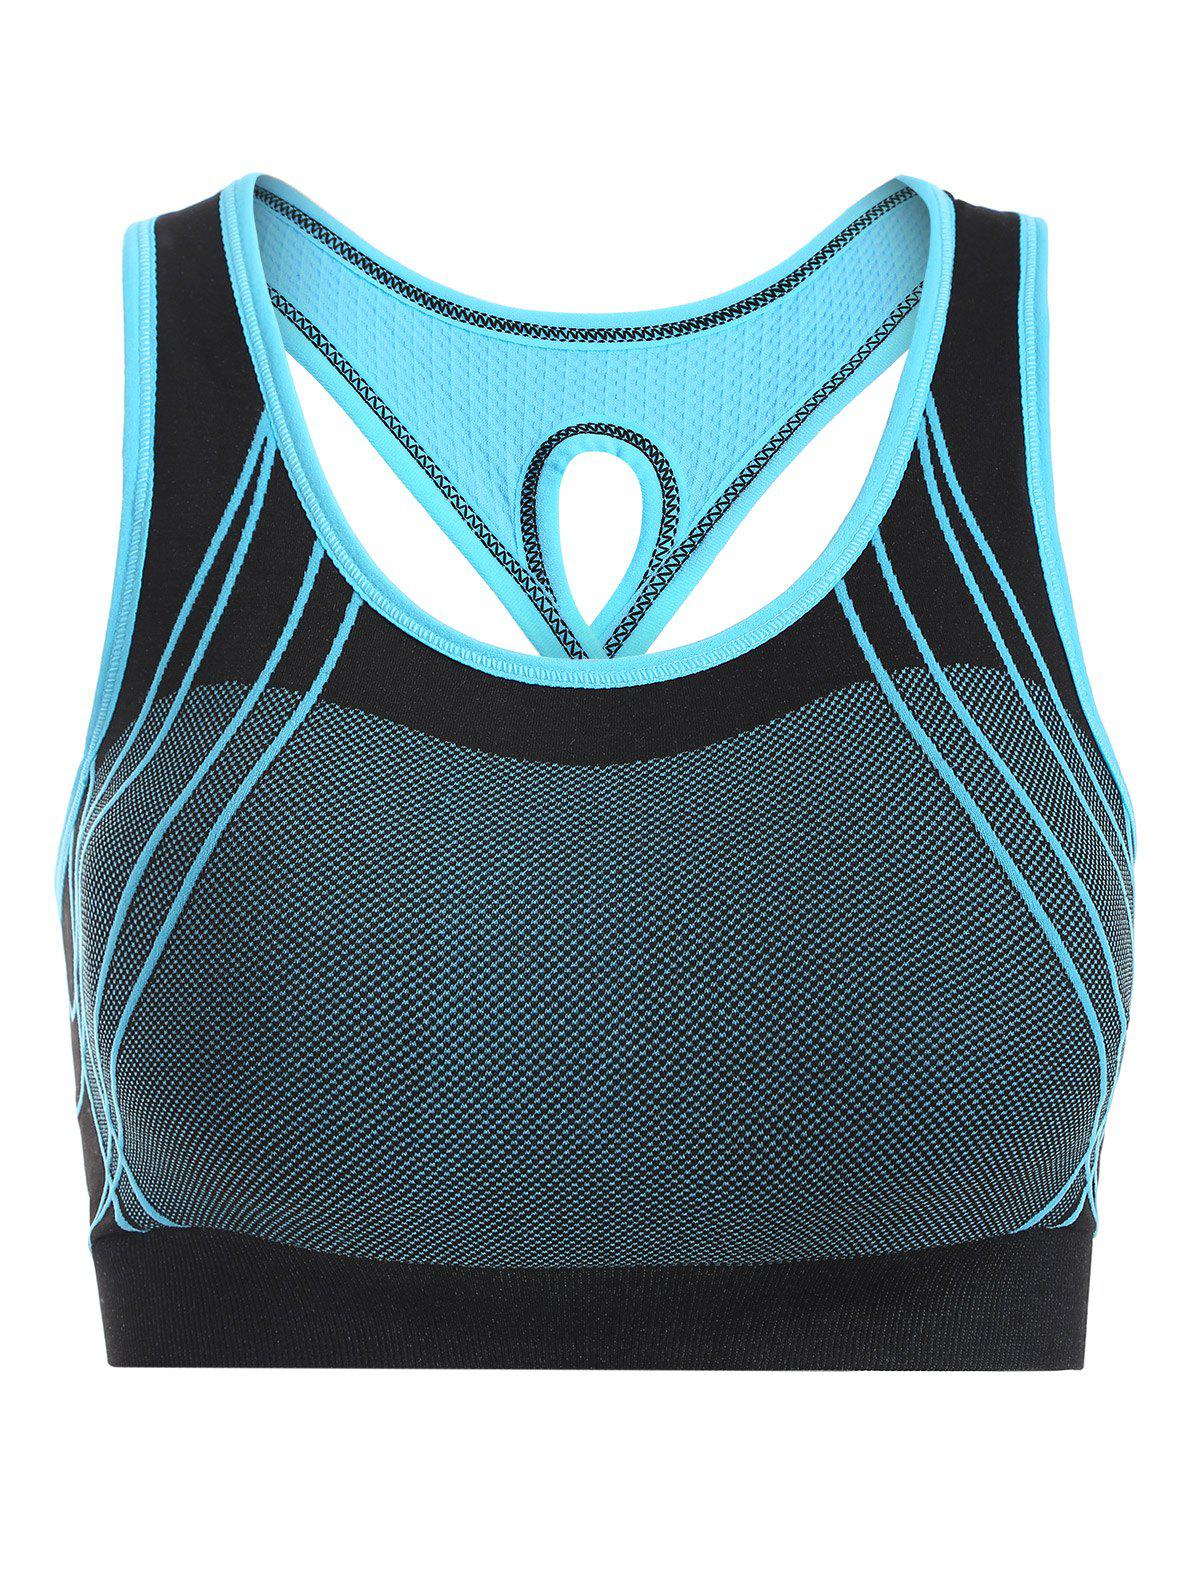 Quick-Dry Criss Cross Shockproof Sports Push Up Bra - BLUE M